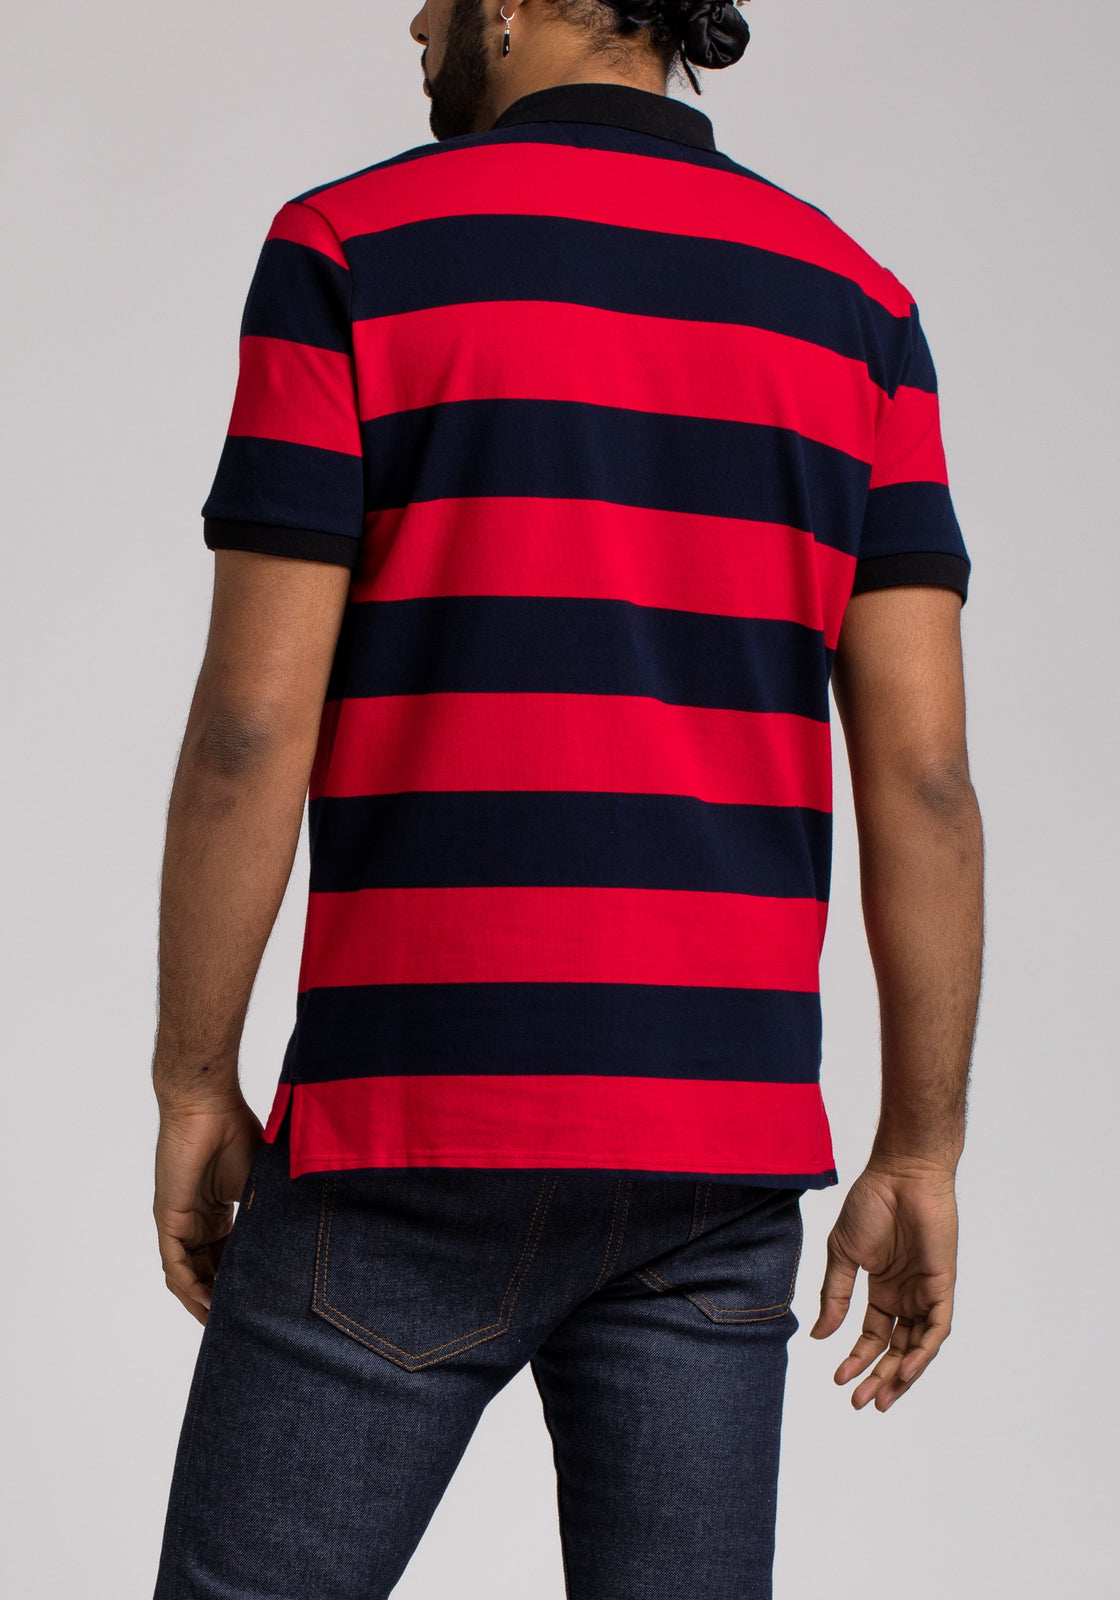 SPACE PATCH STRIPE POLO - Color: Black